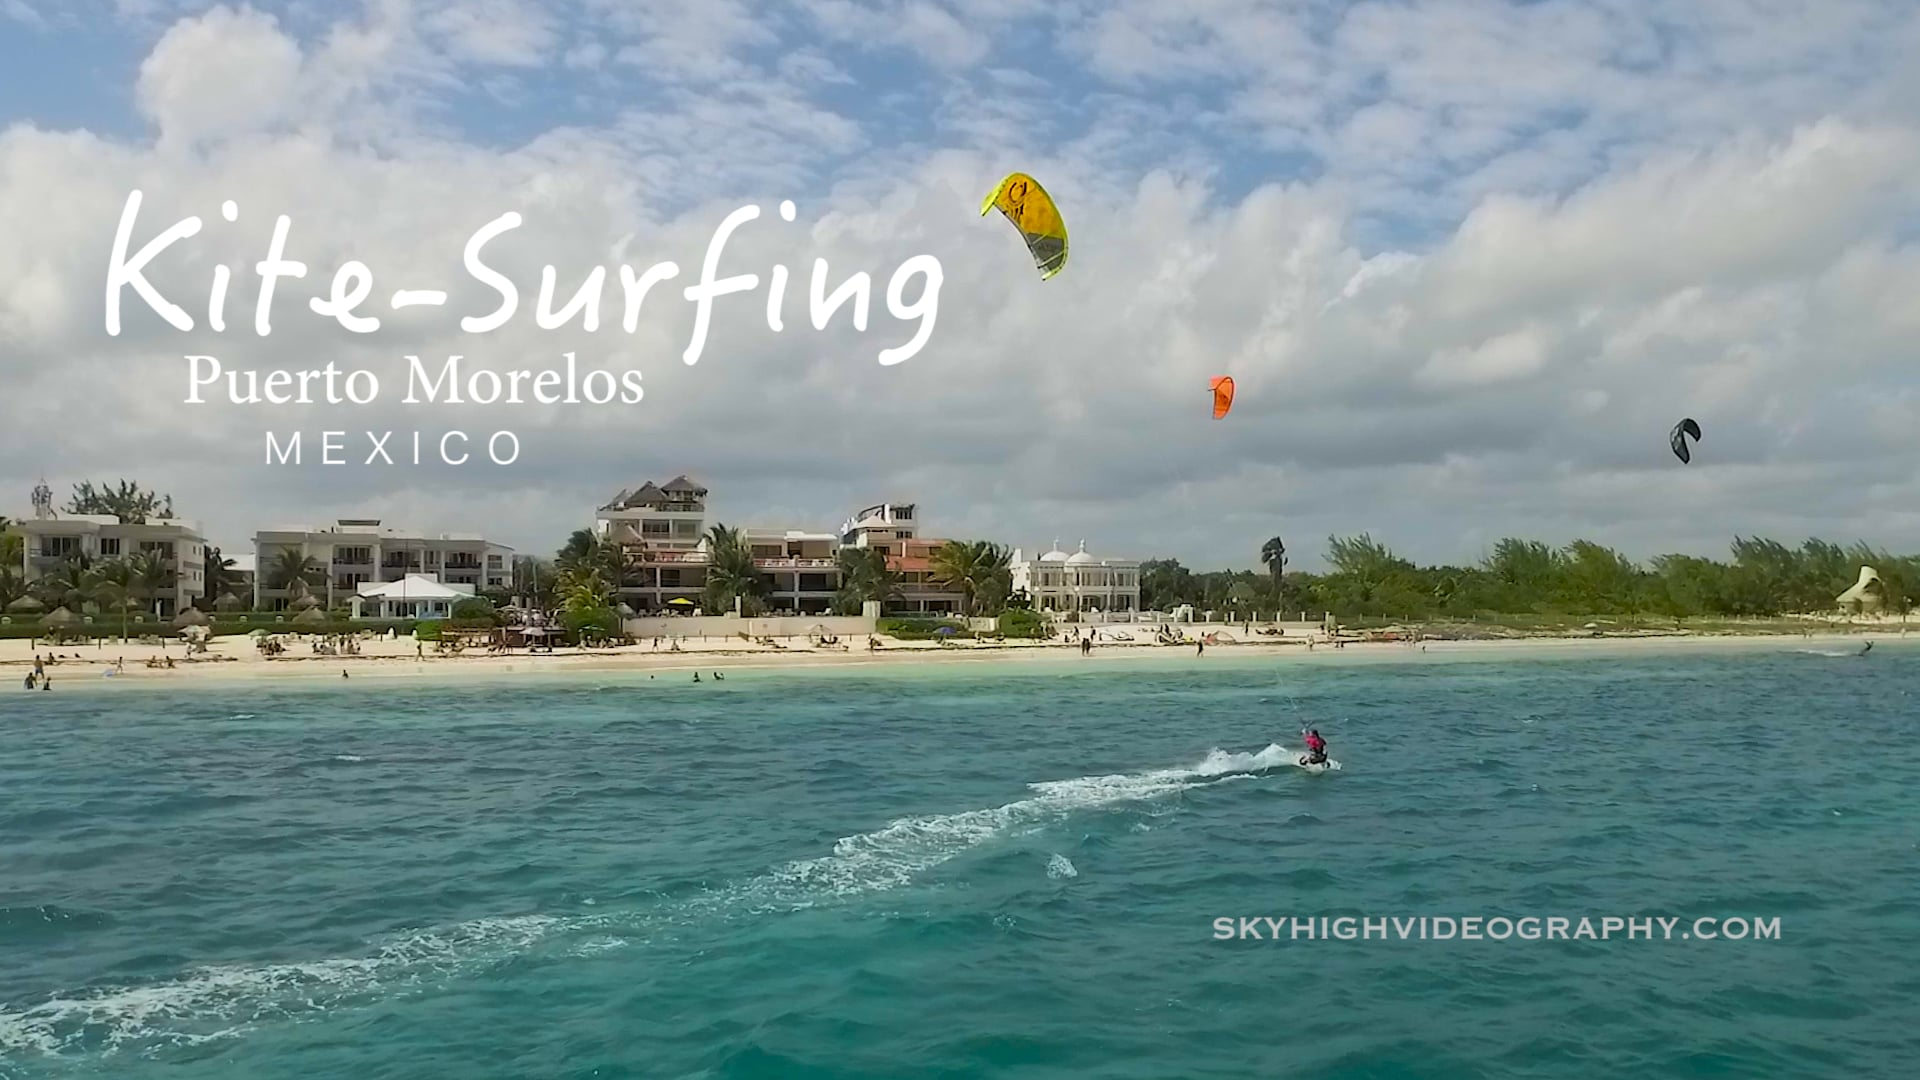 Kite-Surfing in Puerto Morelos Mexico